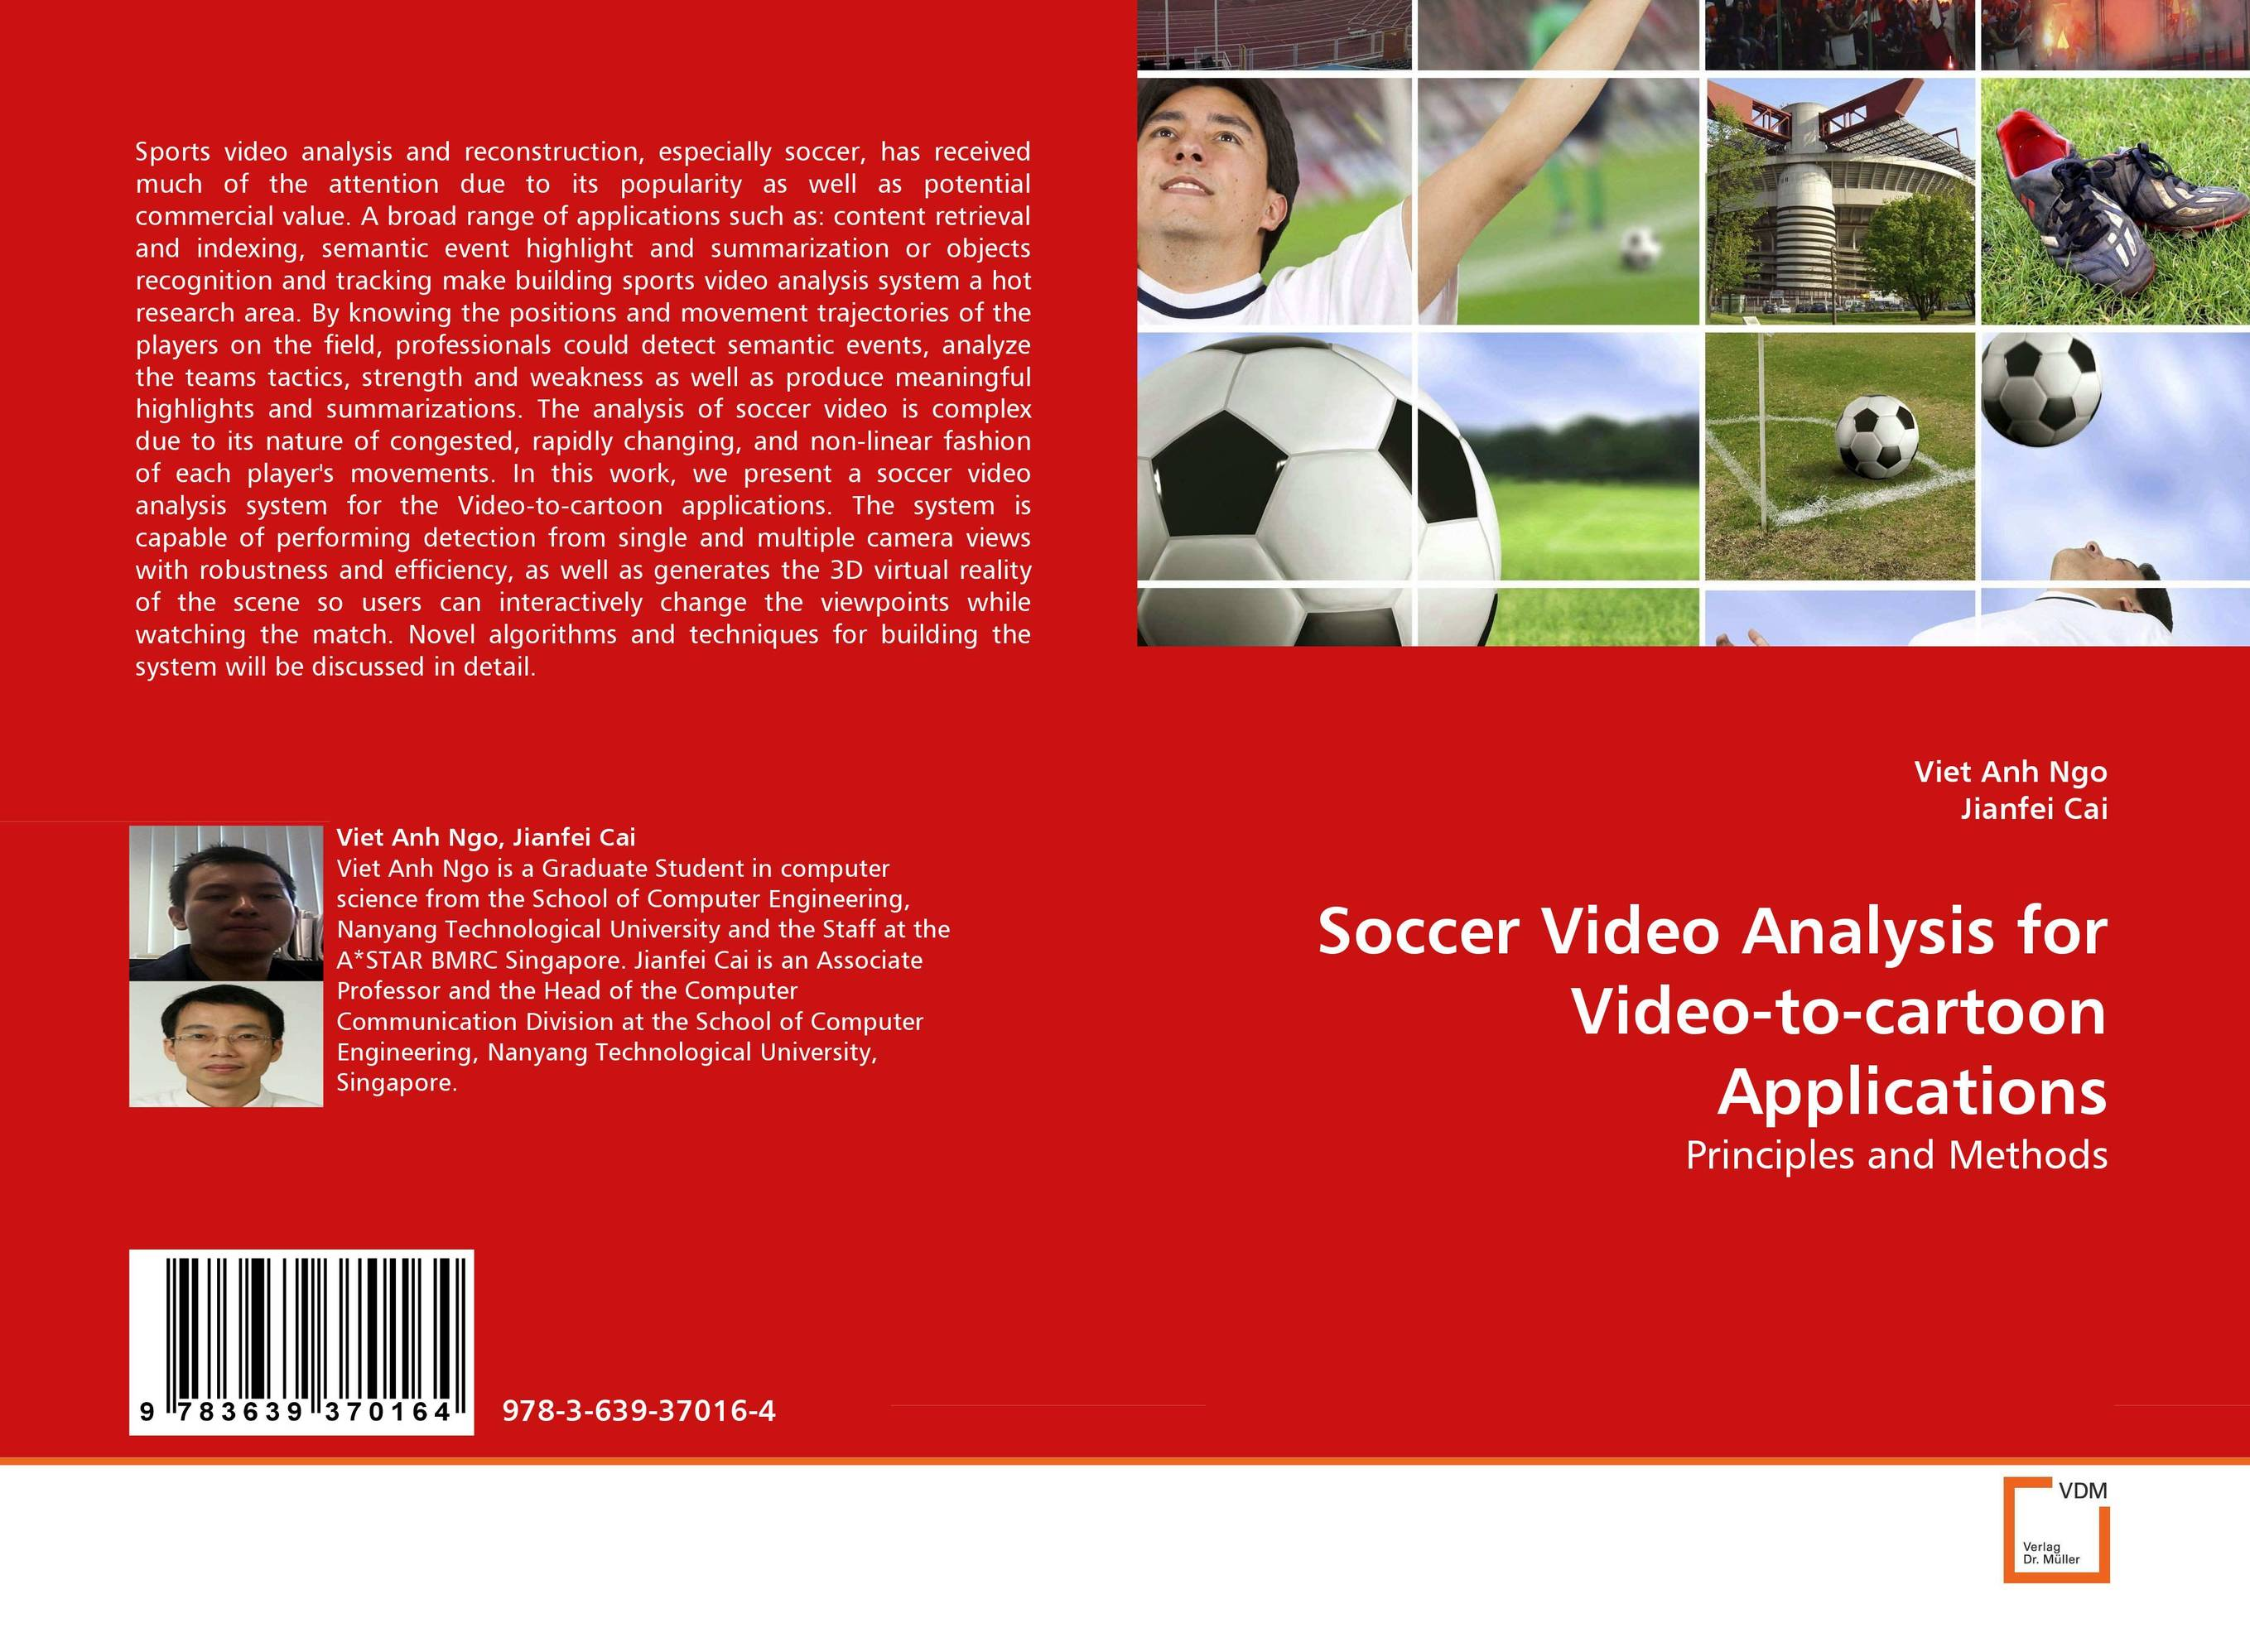 Soccer Video Analysis for Video-to-cartoon Applications the internal load analysis in soccer